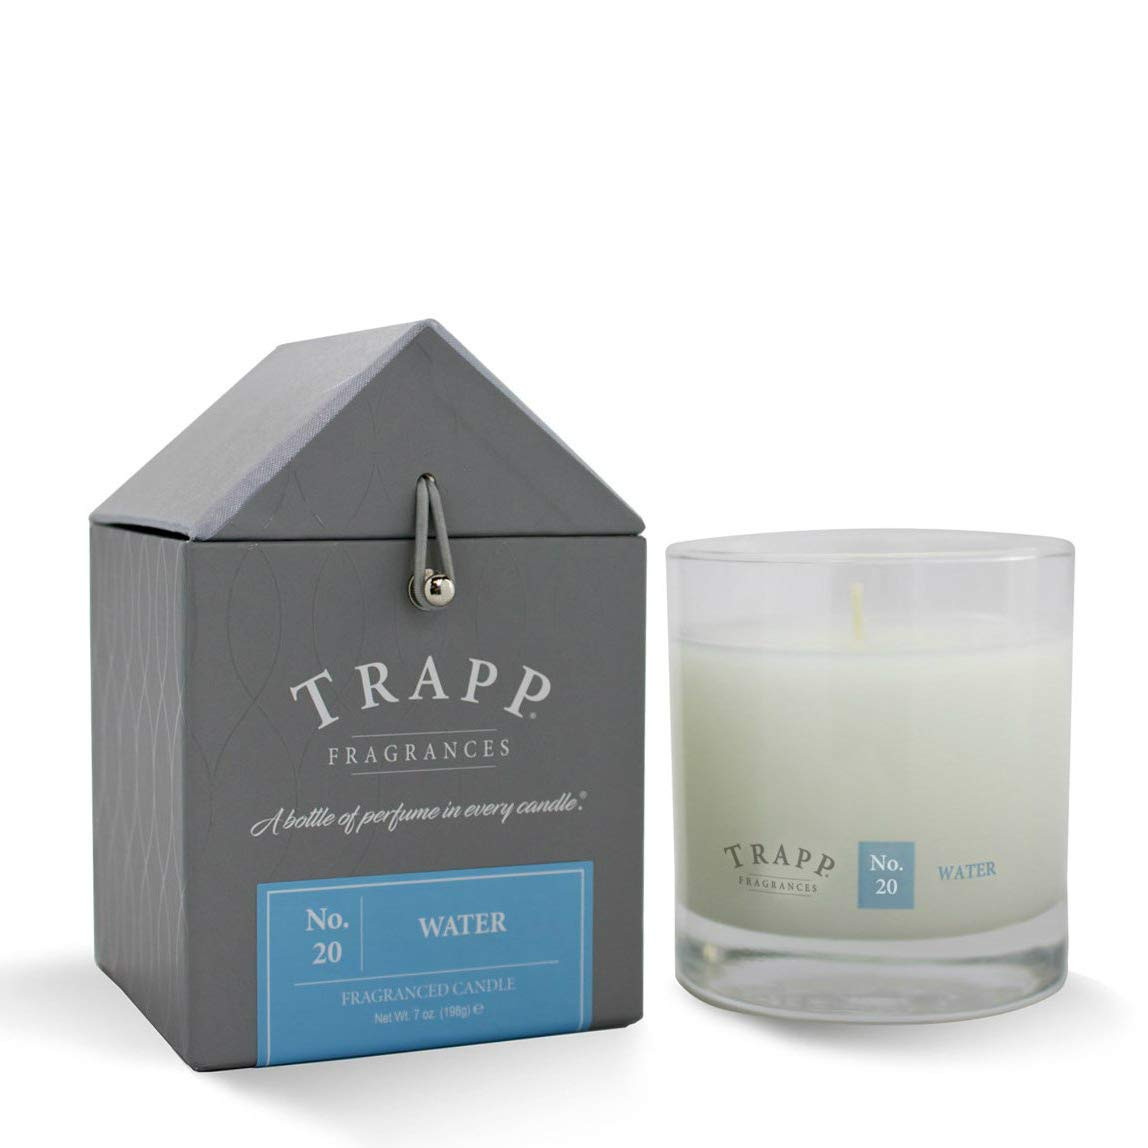 Trapp Signature Home Collection No. 20 Water Poured Scented Candle, 7 Ounce - Set of 2